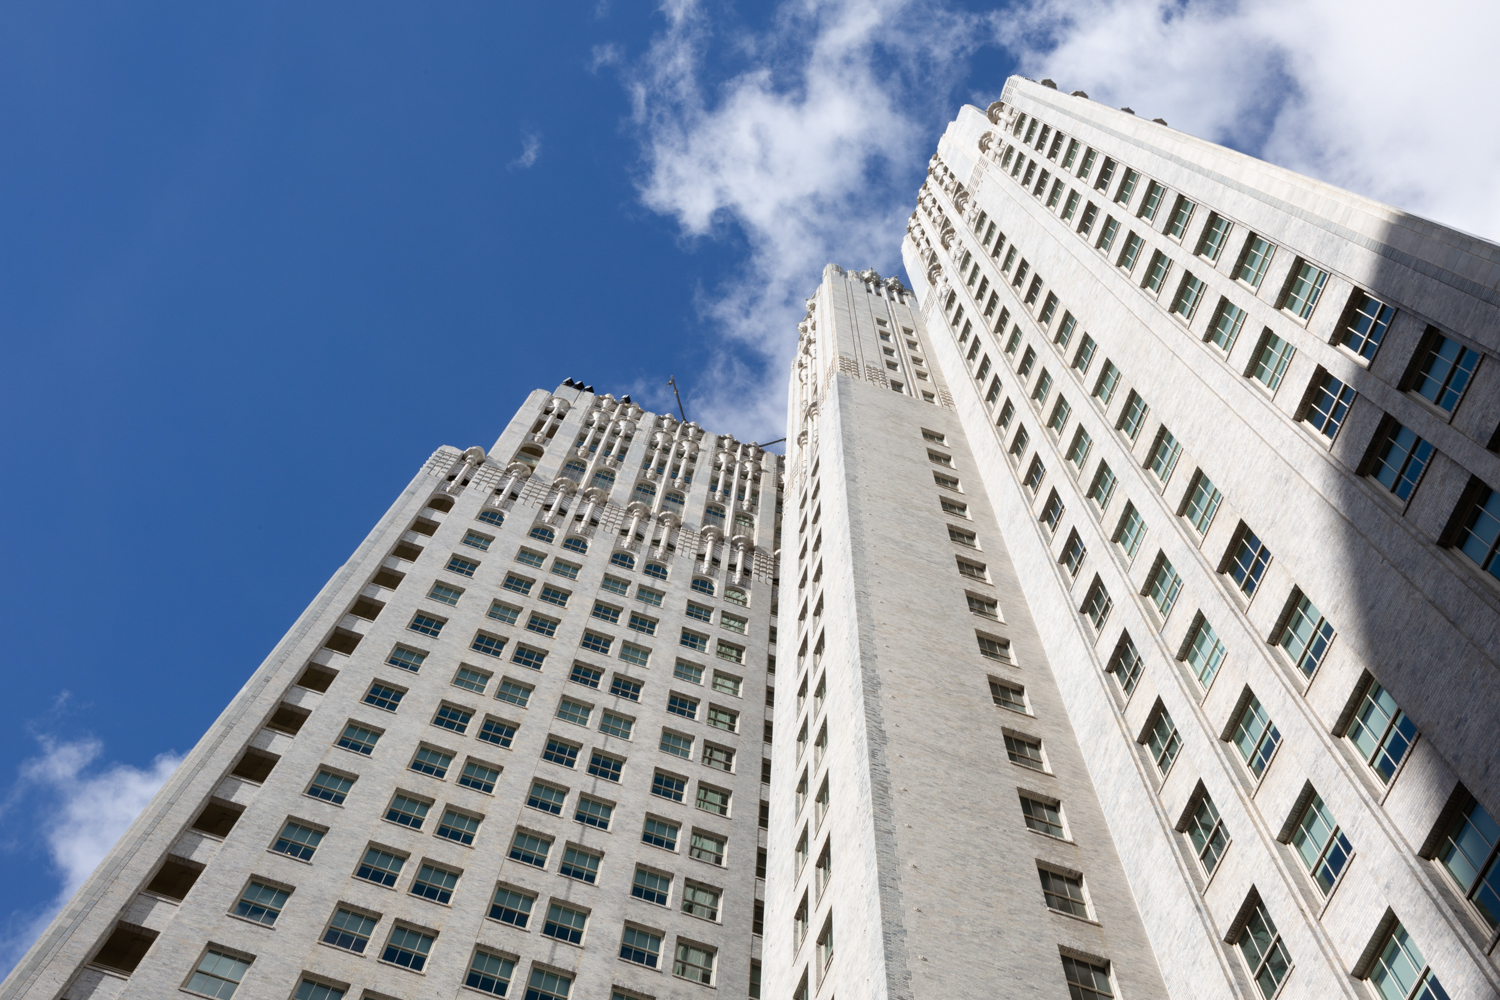 140 New Montgomery Street viewed from below, image by Andrew Campbell Nelson